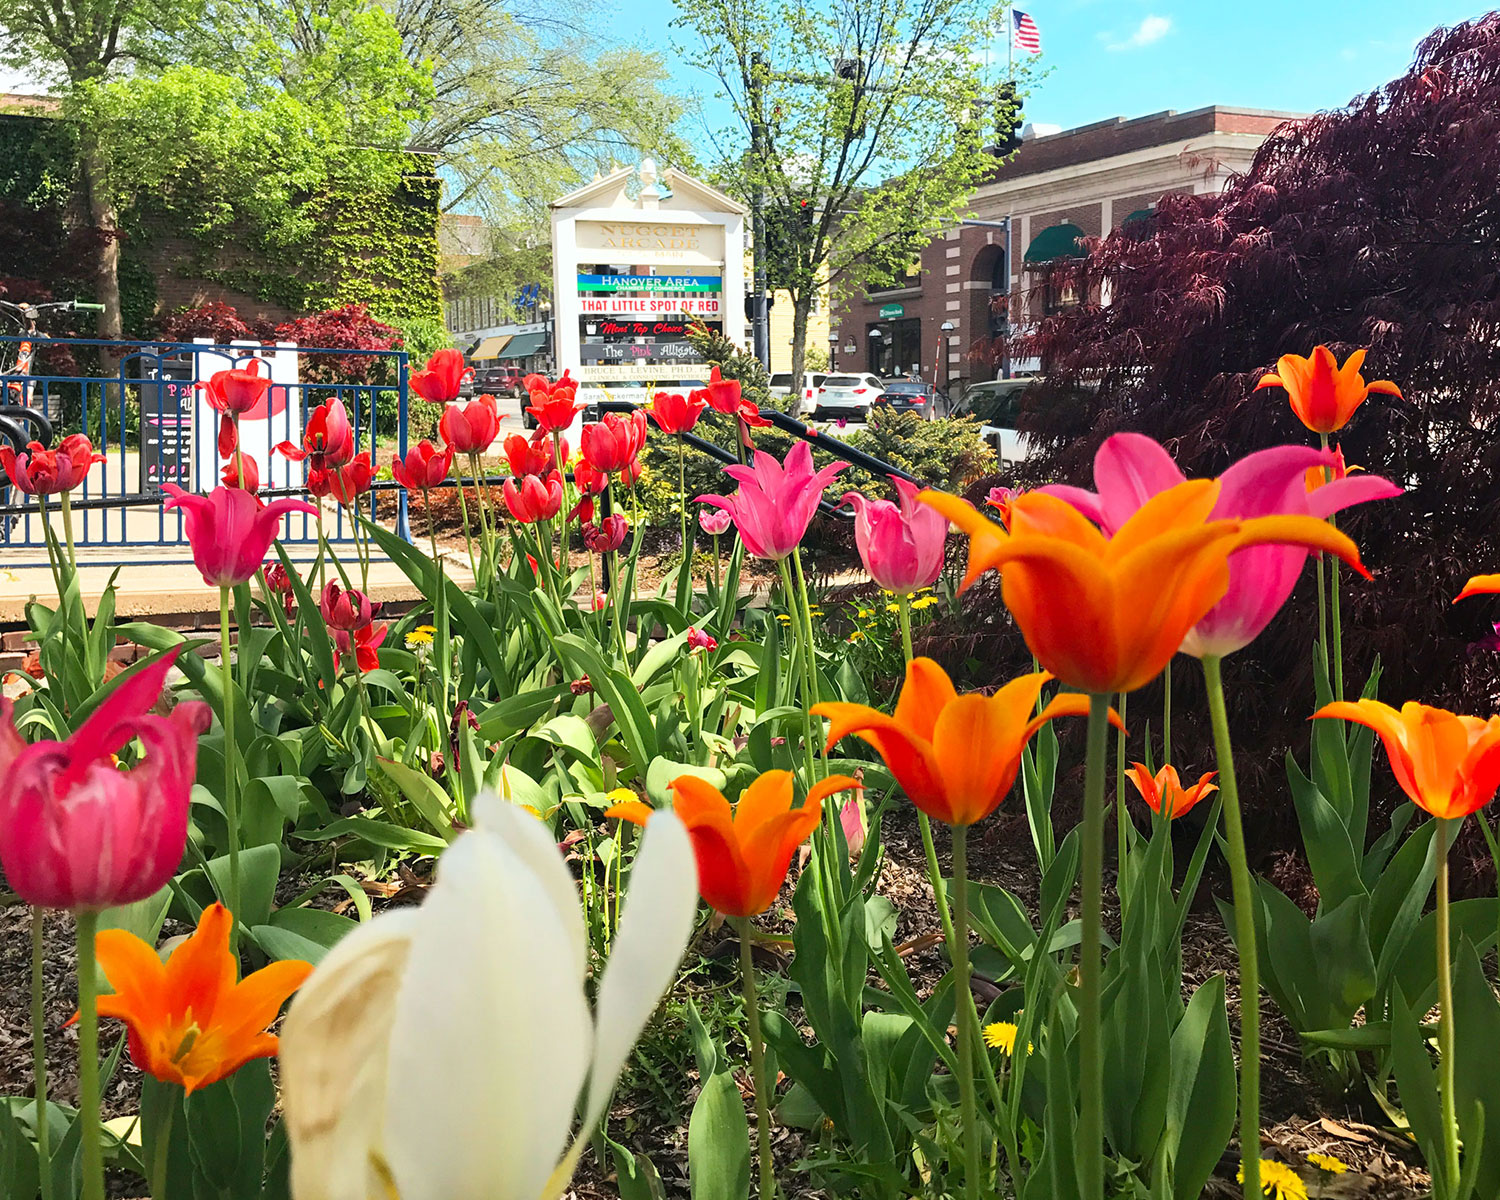 Spring is beautiful in downtown Hanover